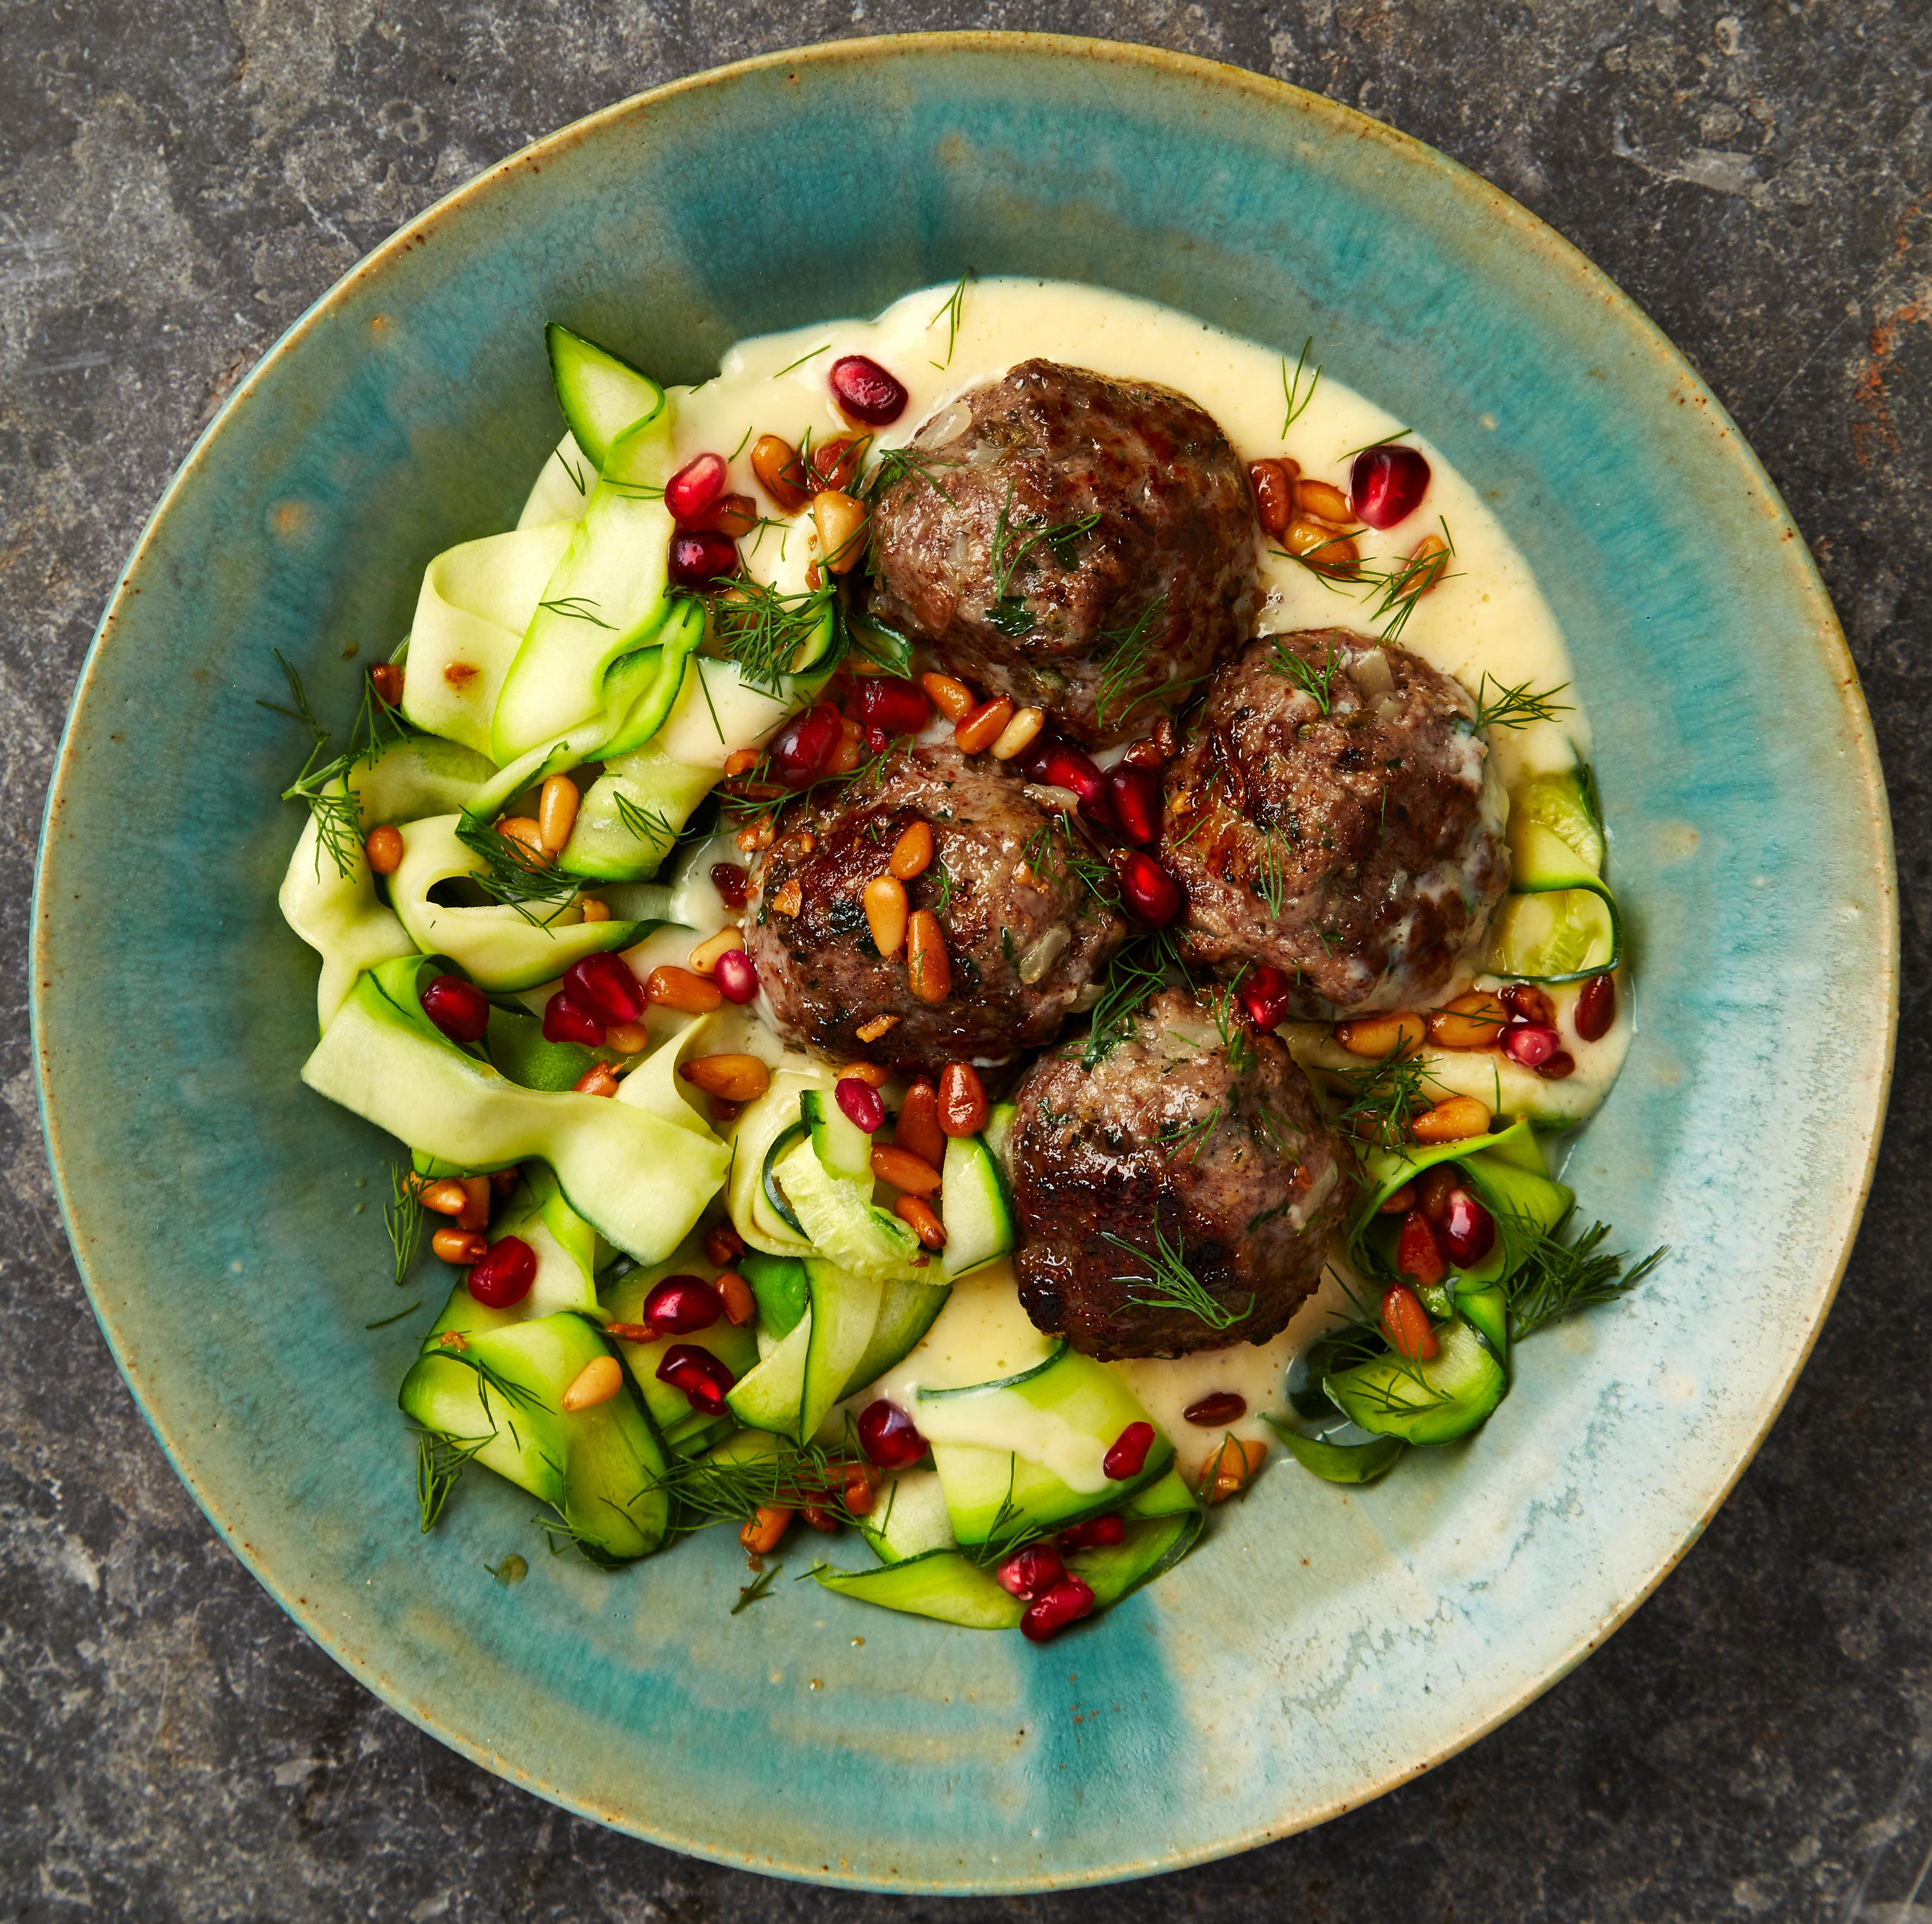 Love me tender: Yotam Ottolenghi's favourite lamb recipes for summer